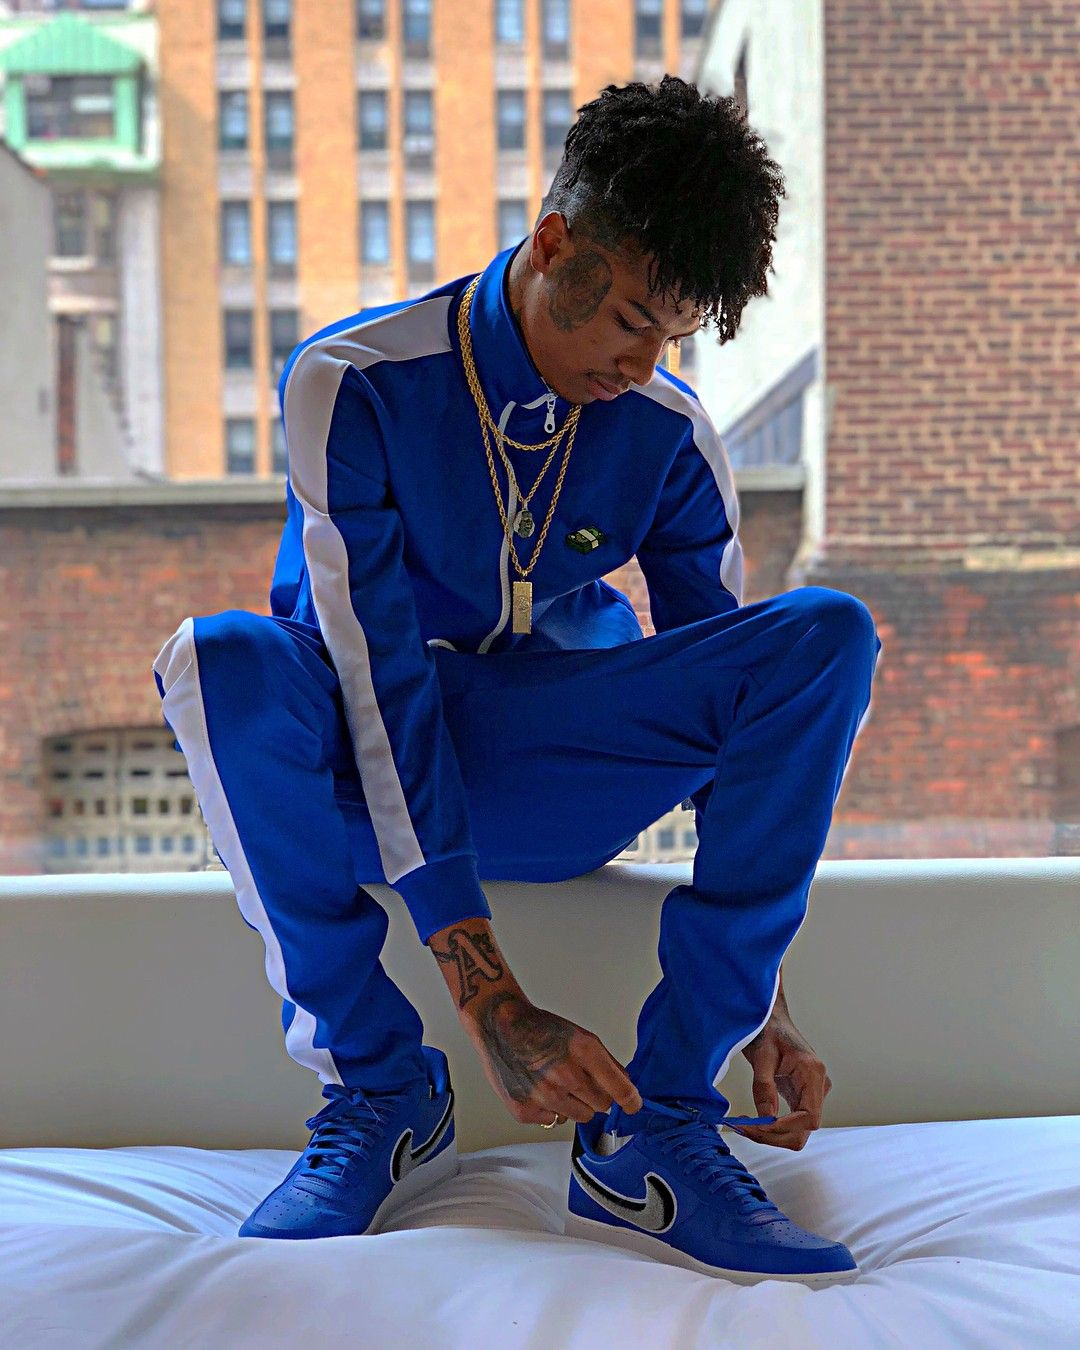 Pin By Zahra Coates On Blueface Rapper Outfits Cute Rappers Rapper Wallpaper Iphone